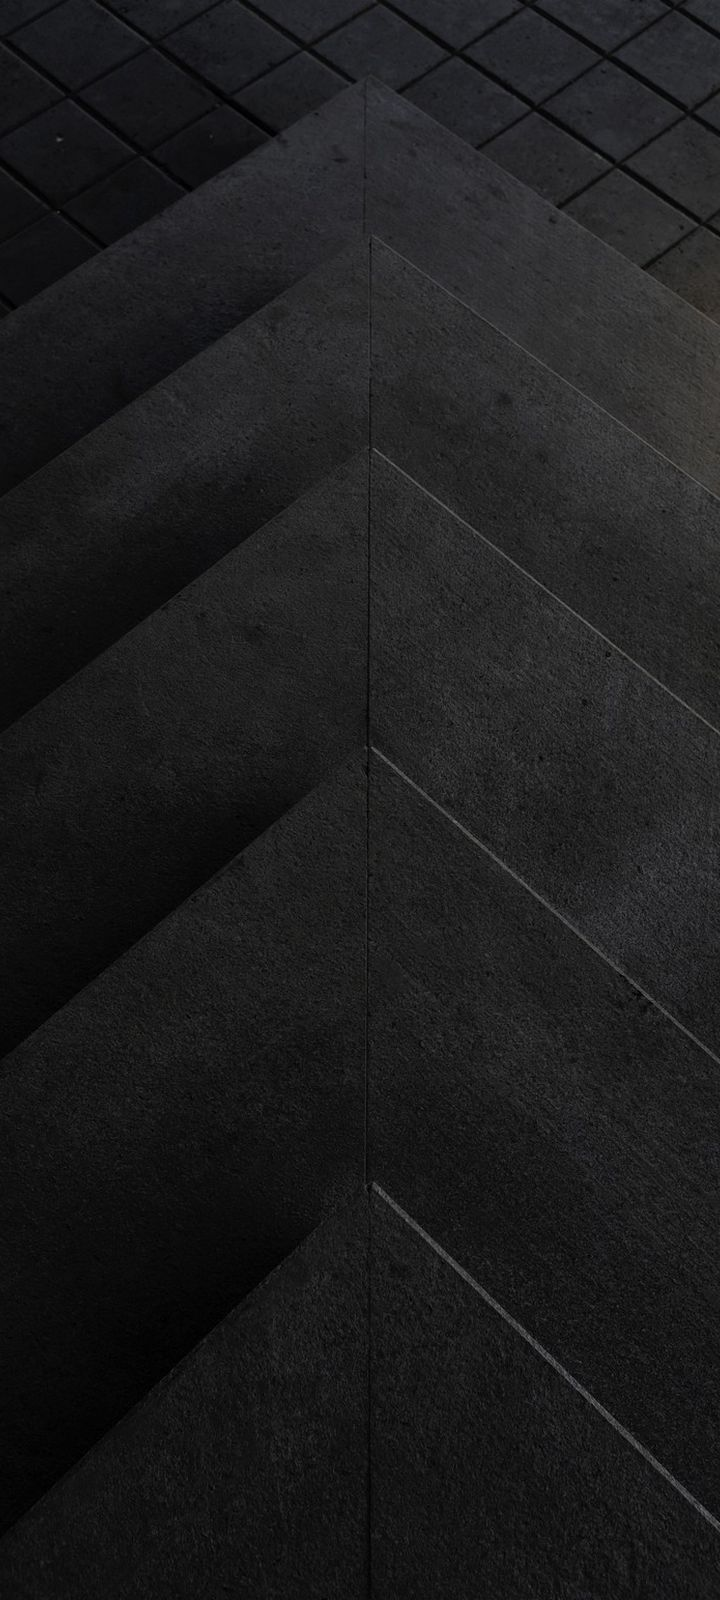 Construction Triangles Bw Wallpaper 720x1600